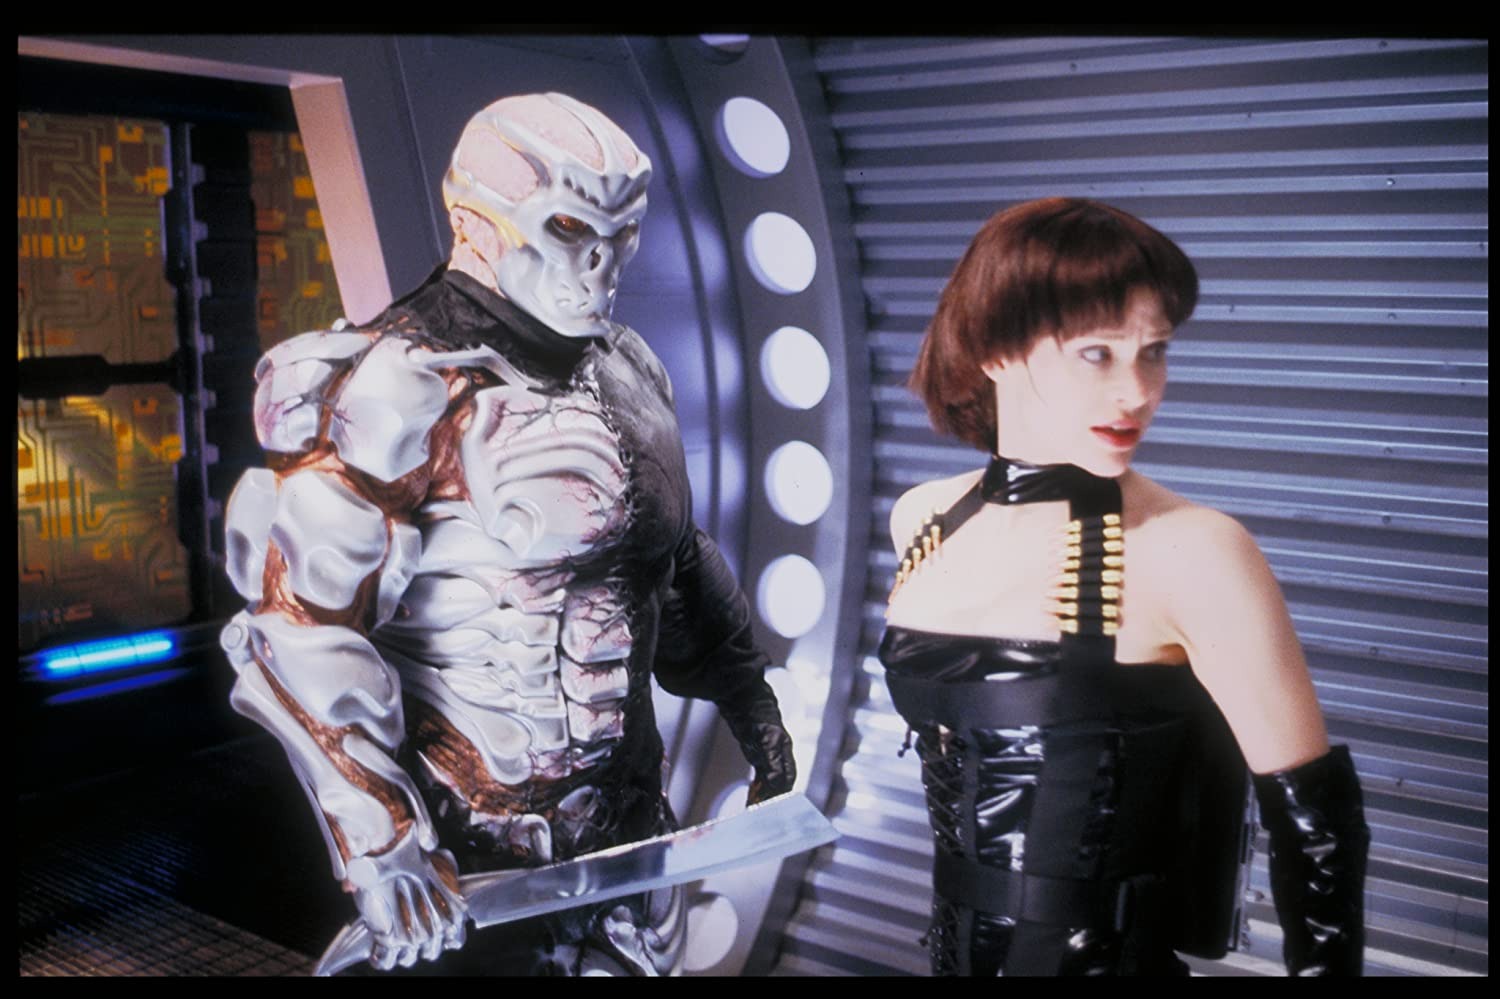 jason x ryder from Lisa